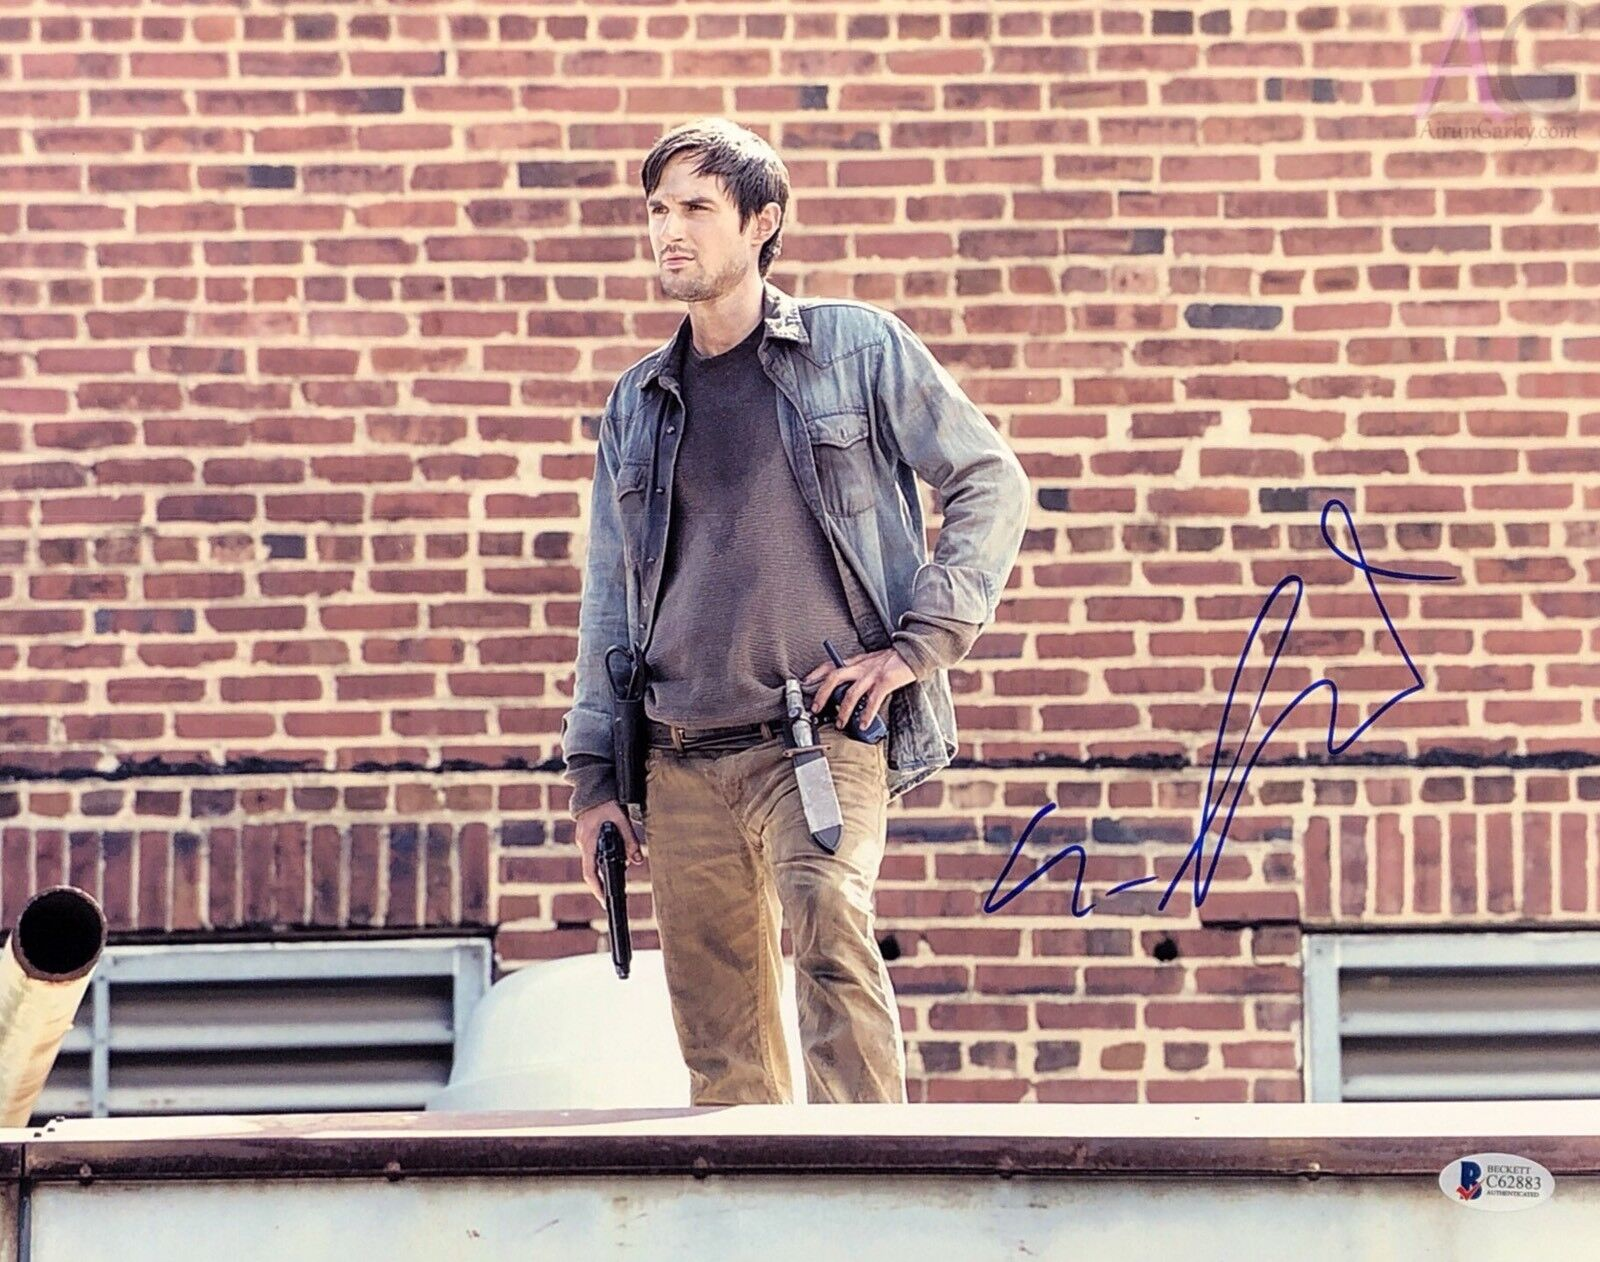 Andrew J. West Signed The Walking Dead 11x14 Photo Beckett BAS C62883